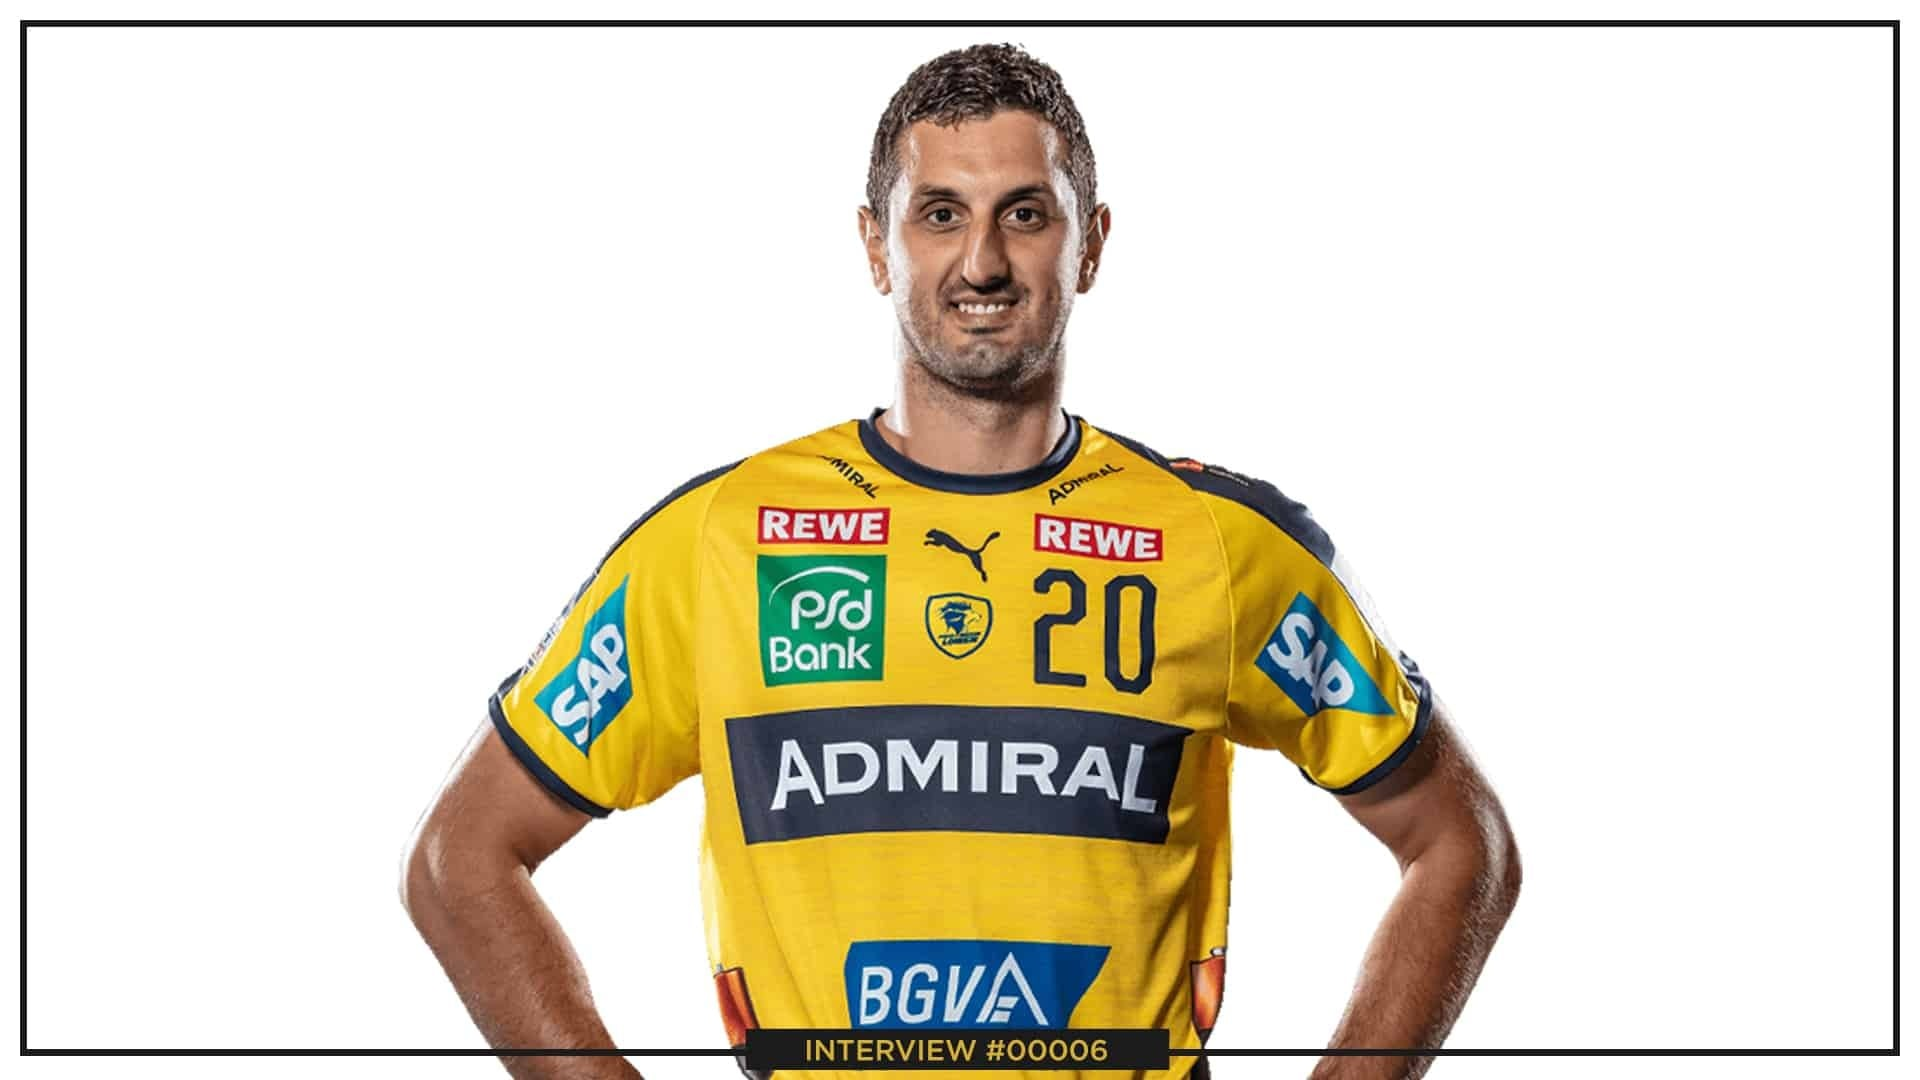 Ilija Abutovic wearing his jersey in a yellow colour and smiling while staring in front of the camera on a white background.